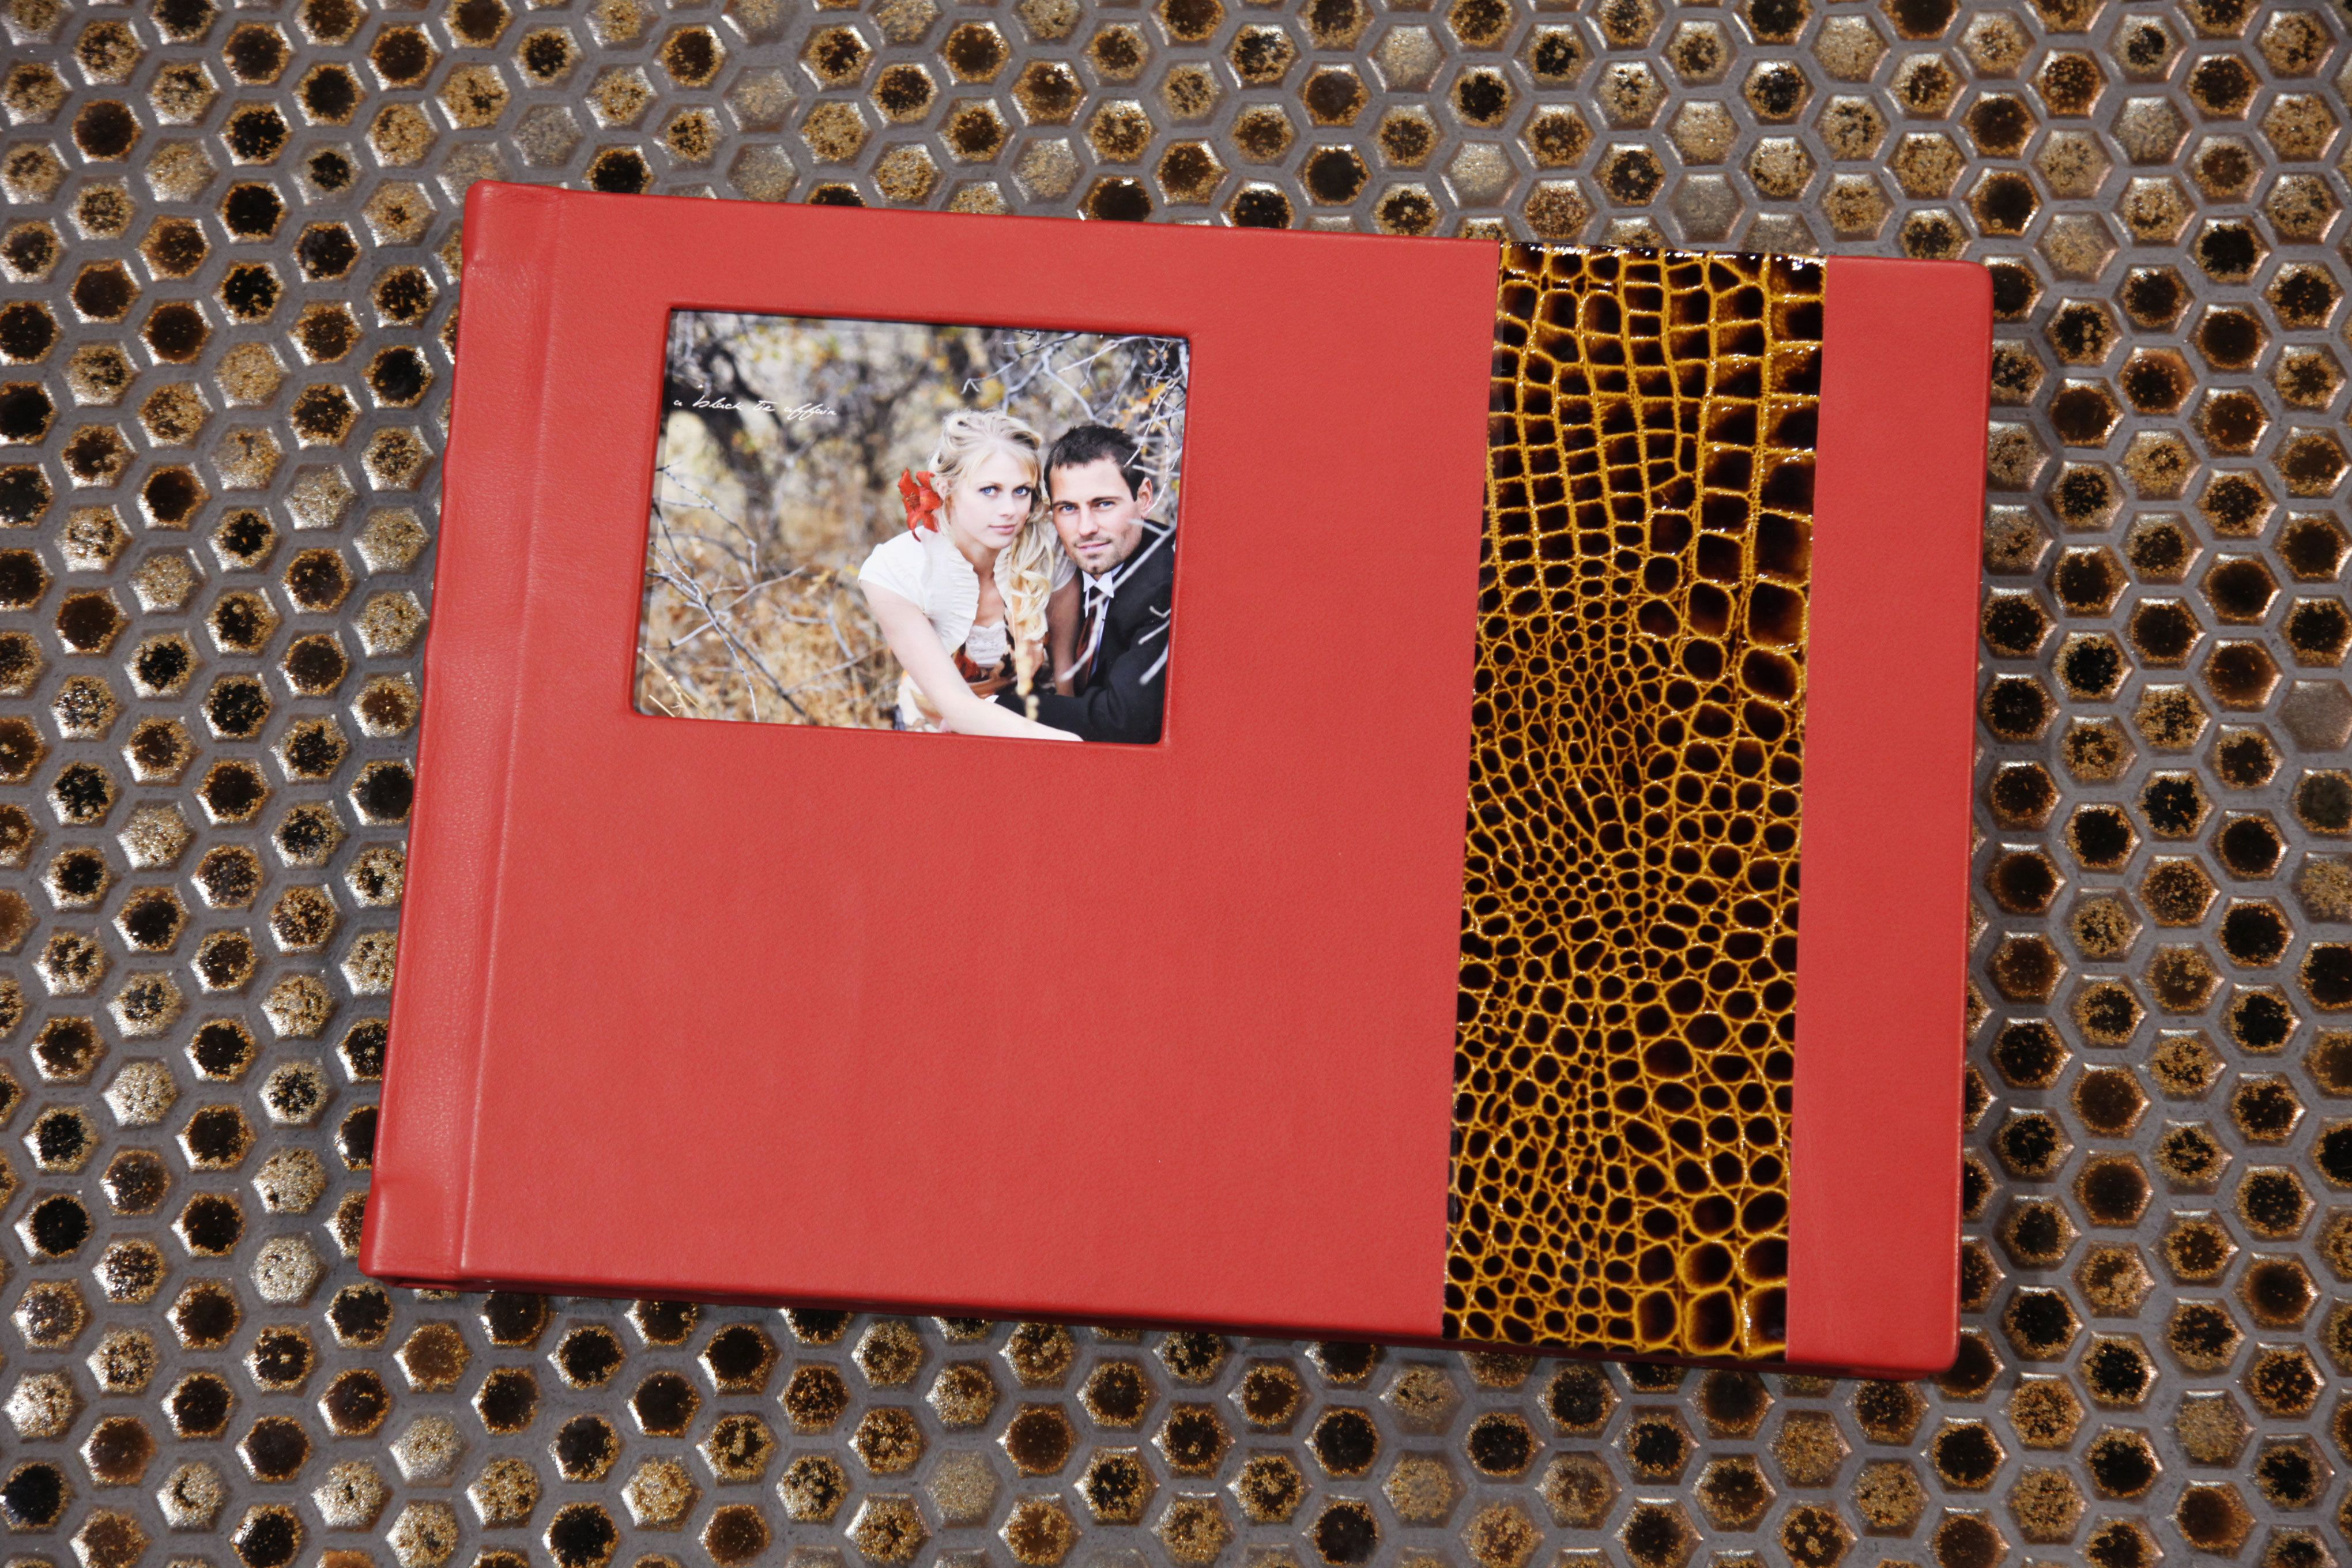 Finao Album Scarlet Ohara Leather With Patina Leather Accent